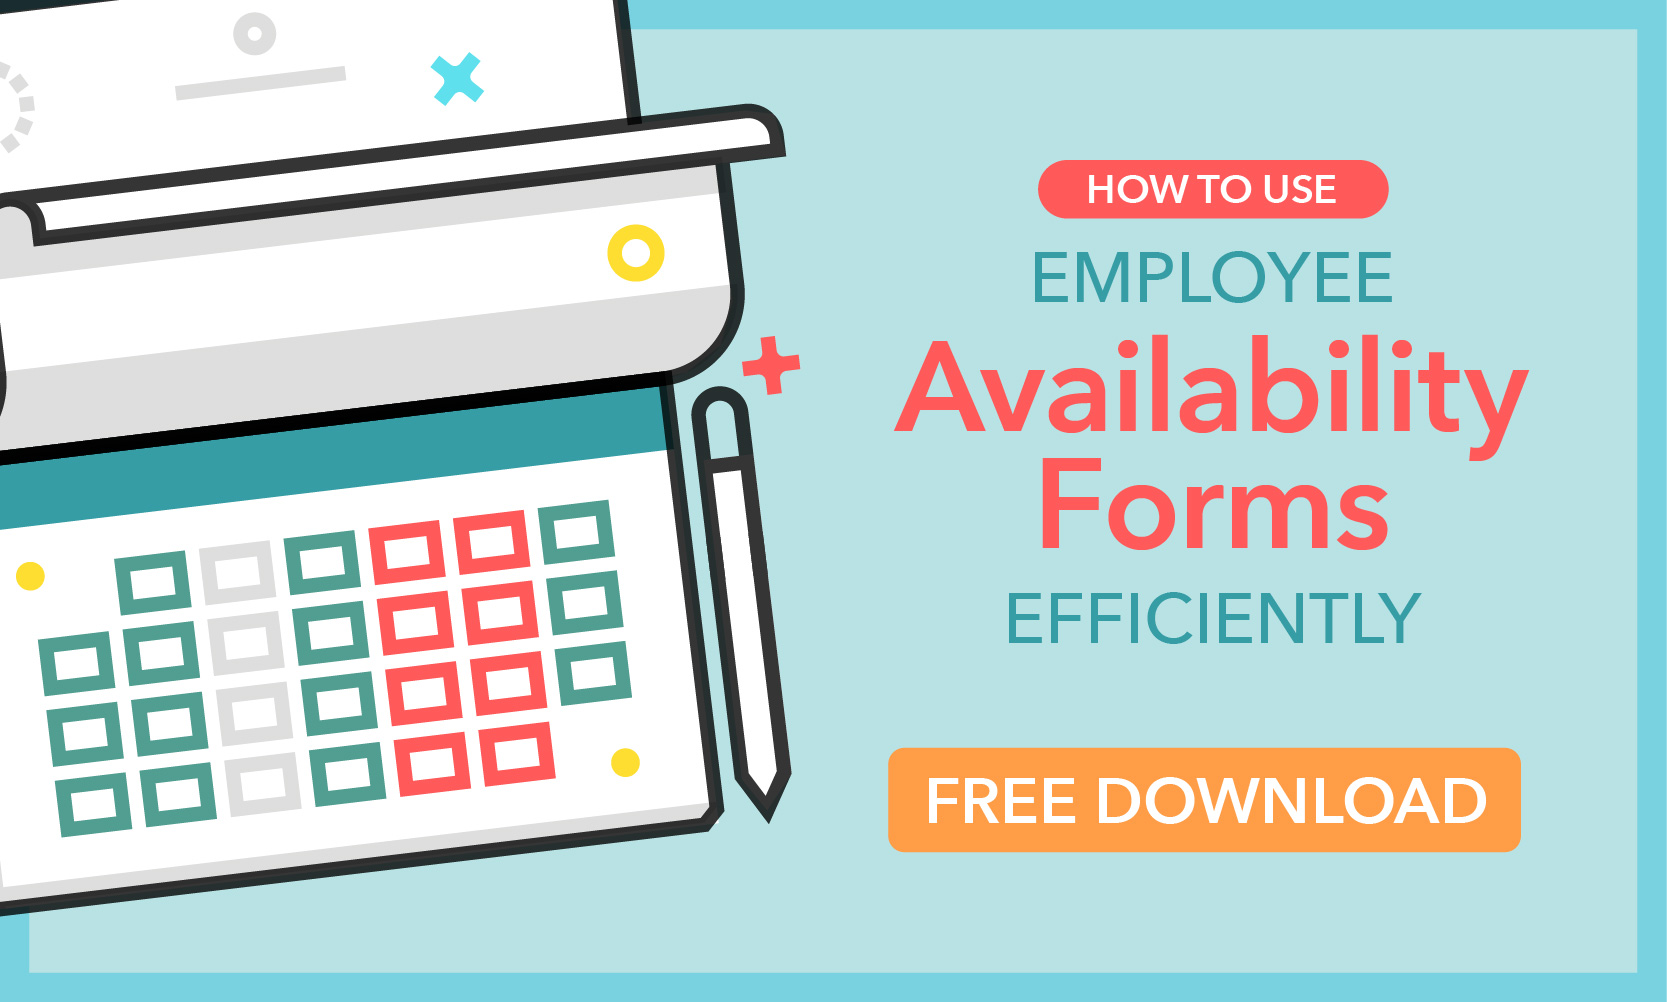 How To Use Employee Availability Forms Efficiently